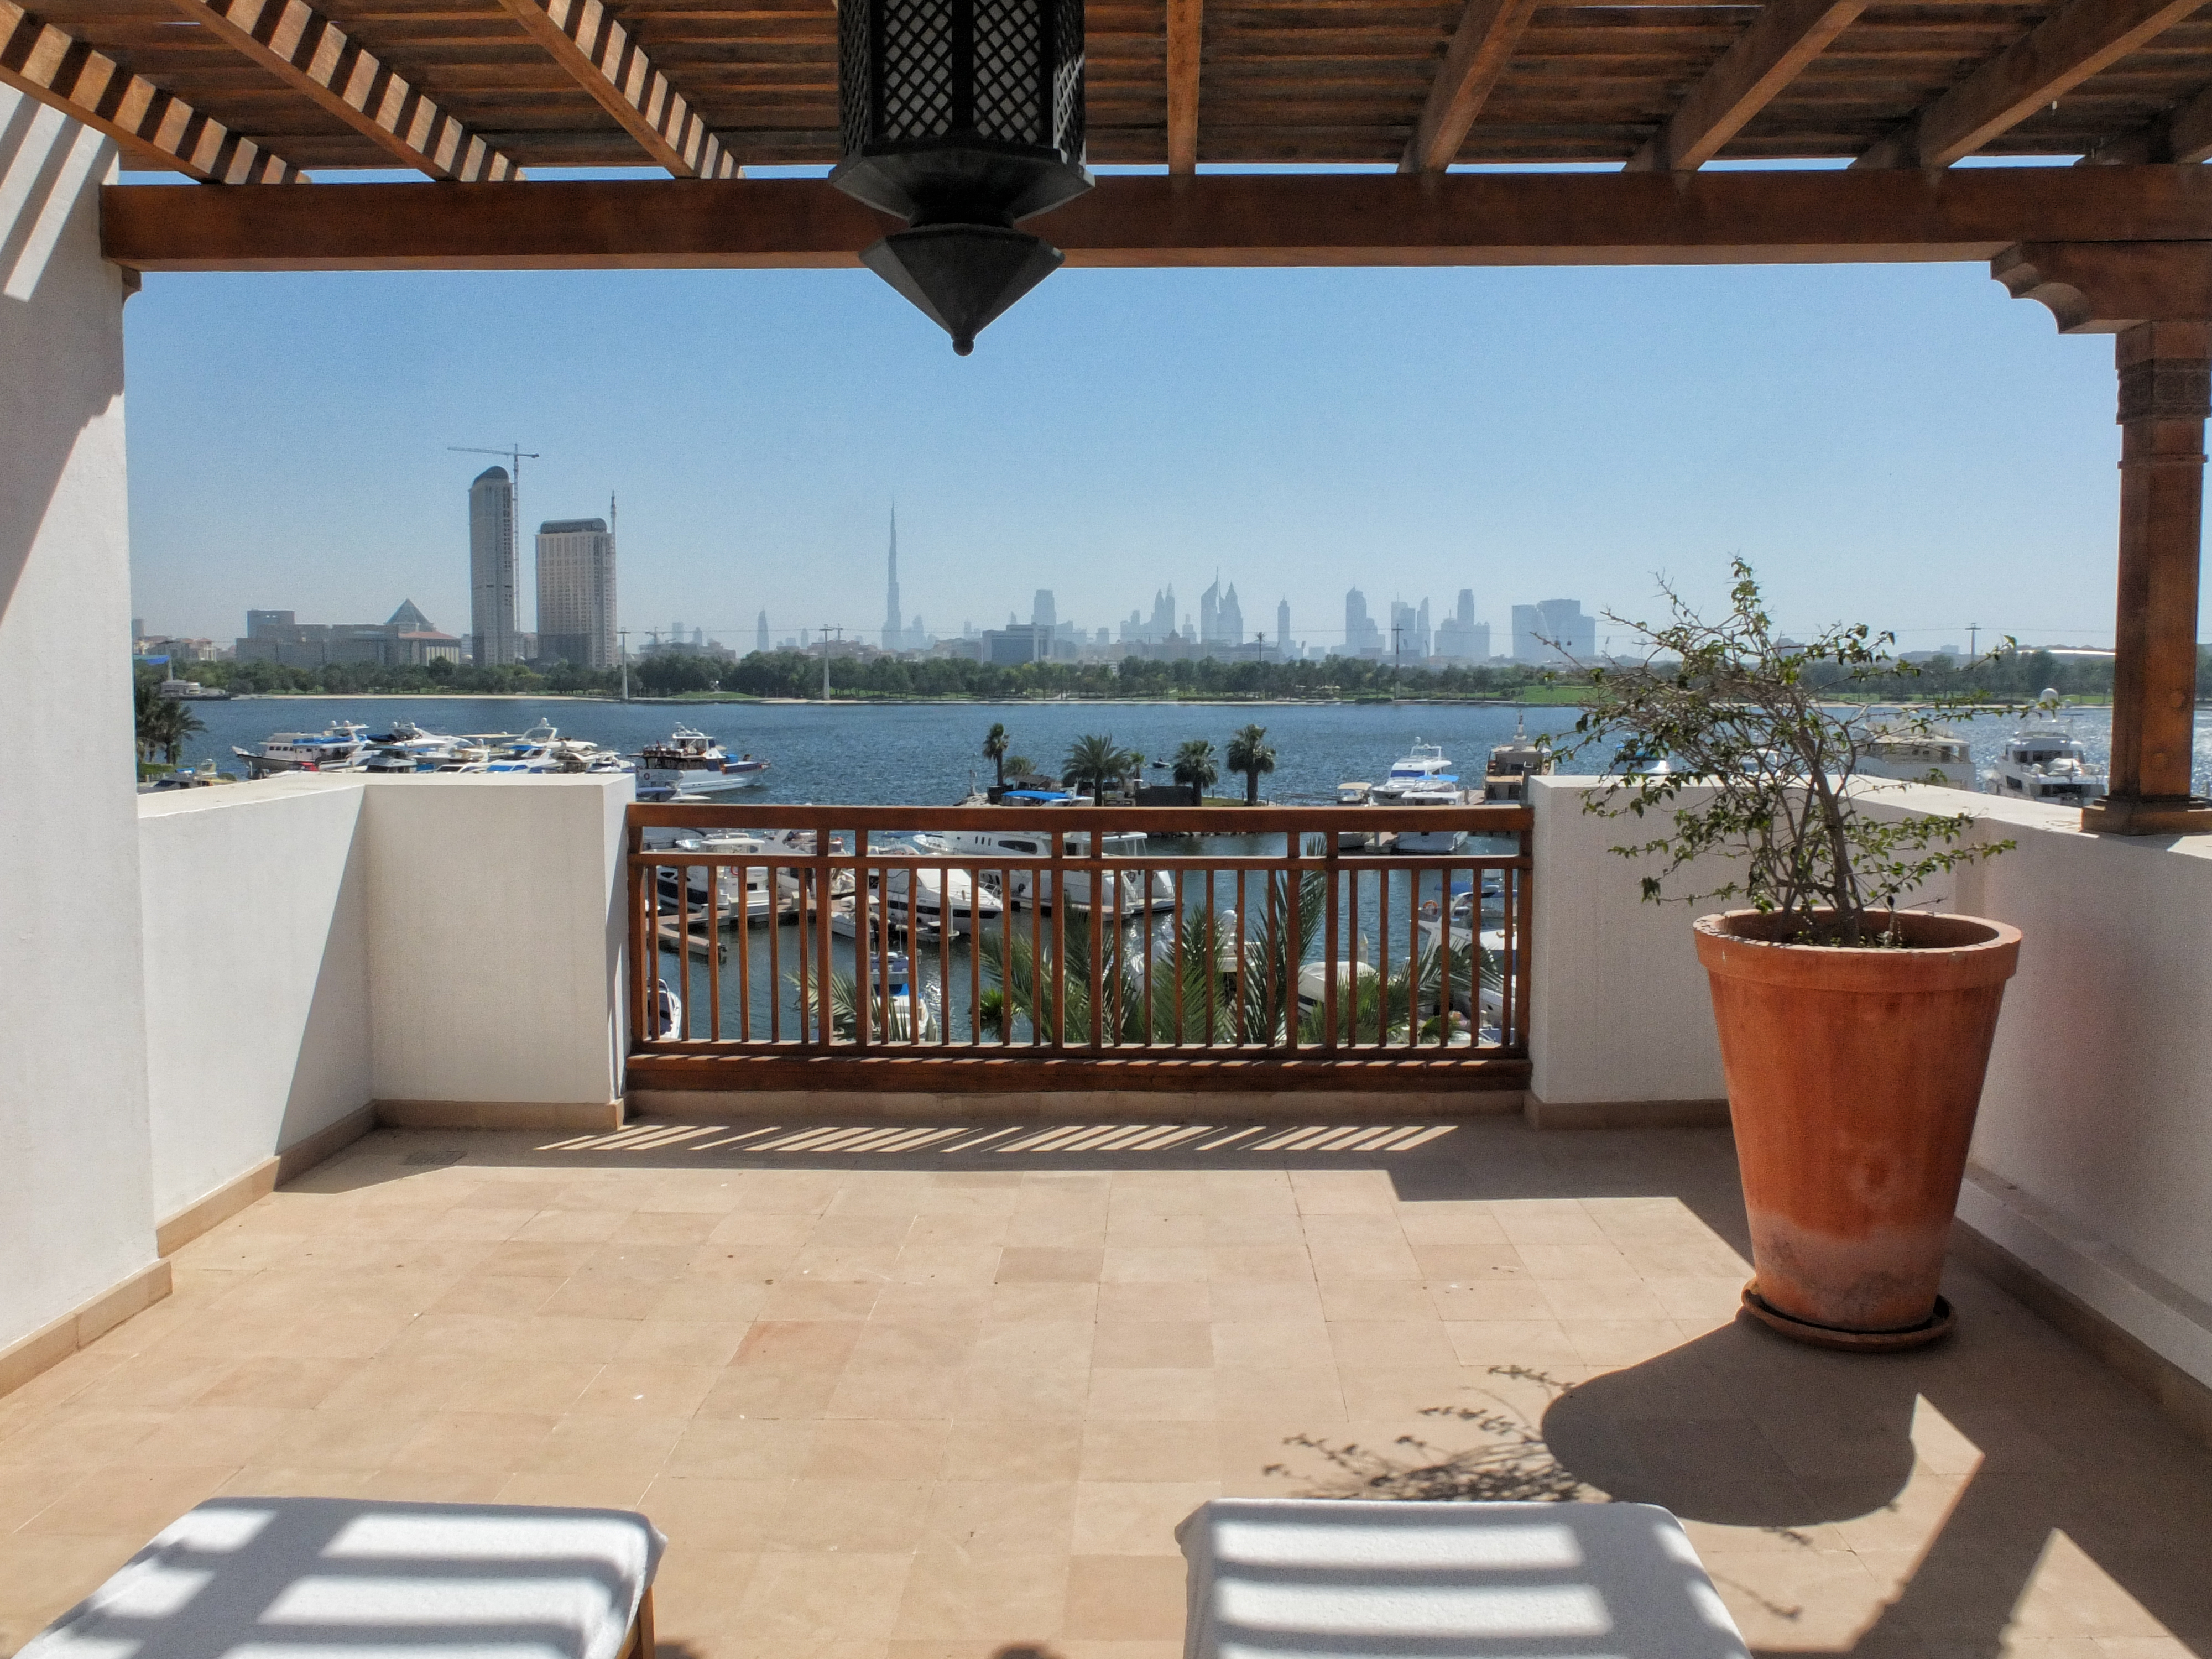 The park hyatt dubai andy 39 s travel blog for Terrace in a sentence